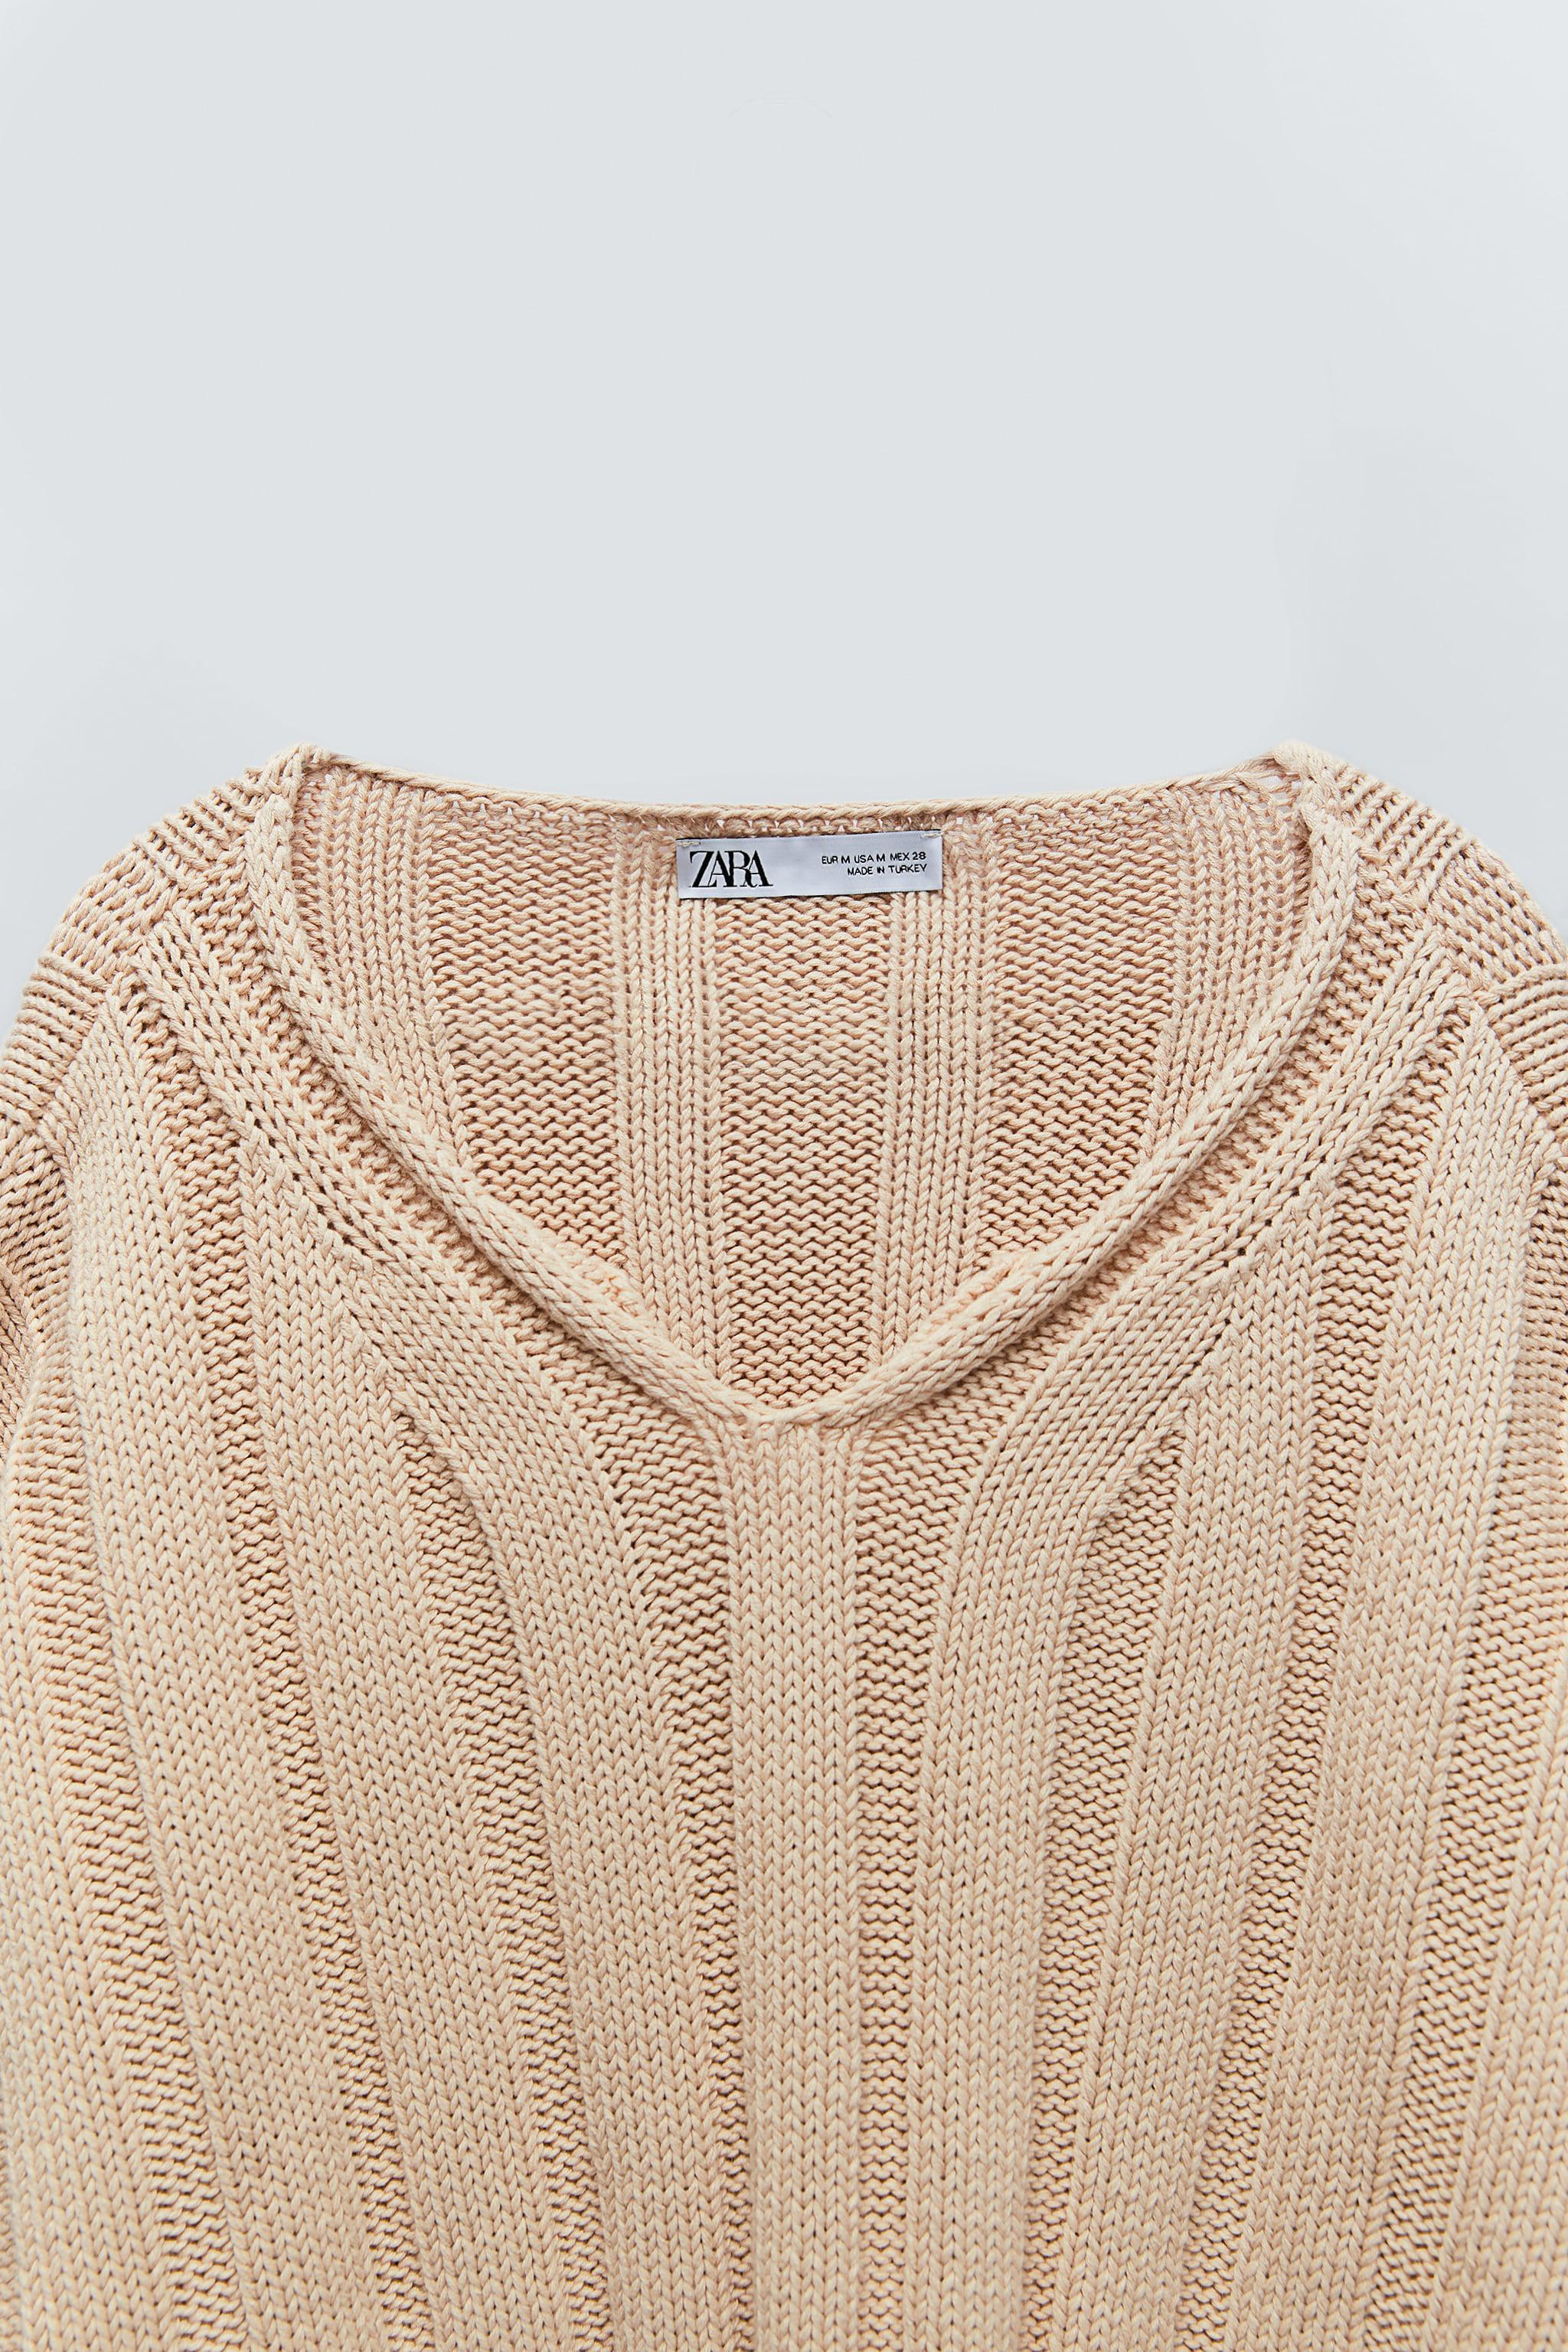 RIBBED KNIT SWEATER 6